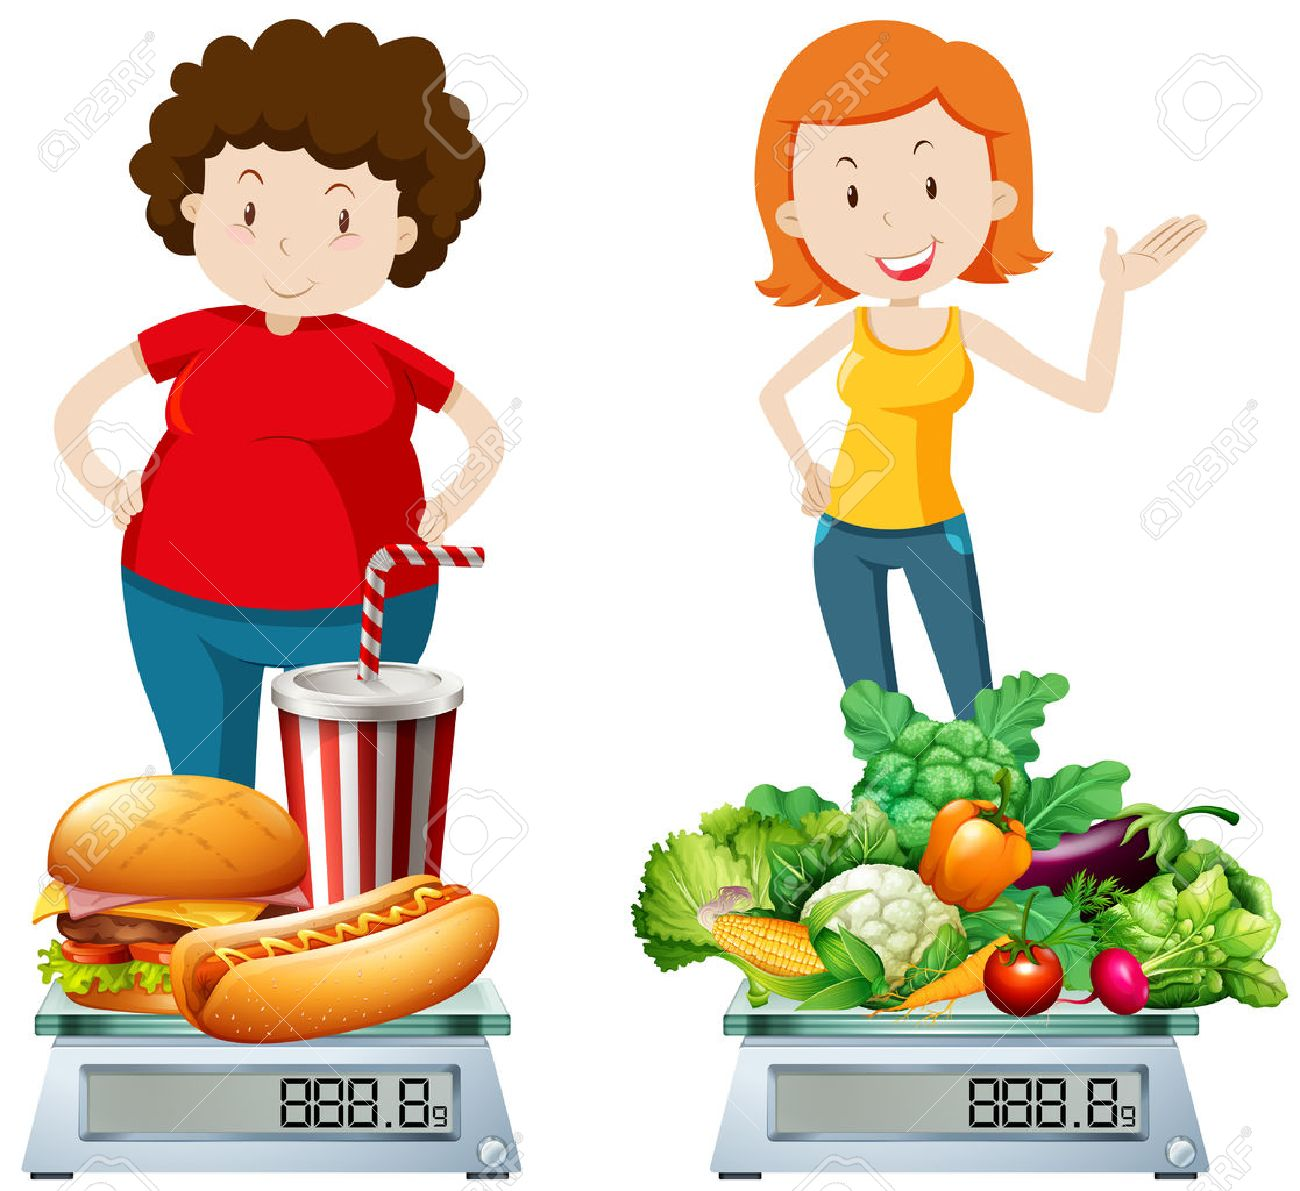 Woman eating healthy and unhealthy food illustration - 51440440